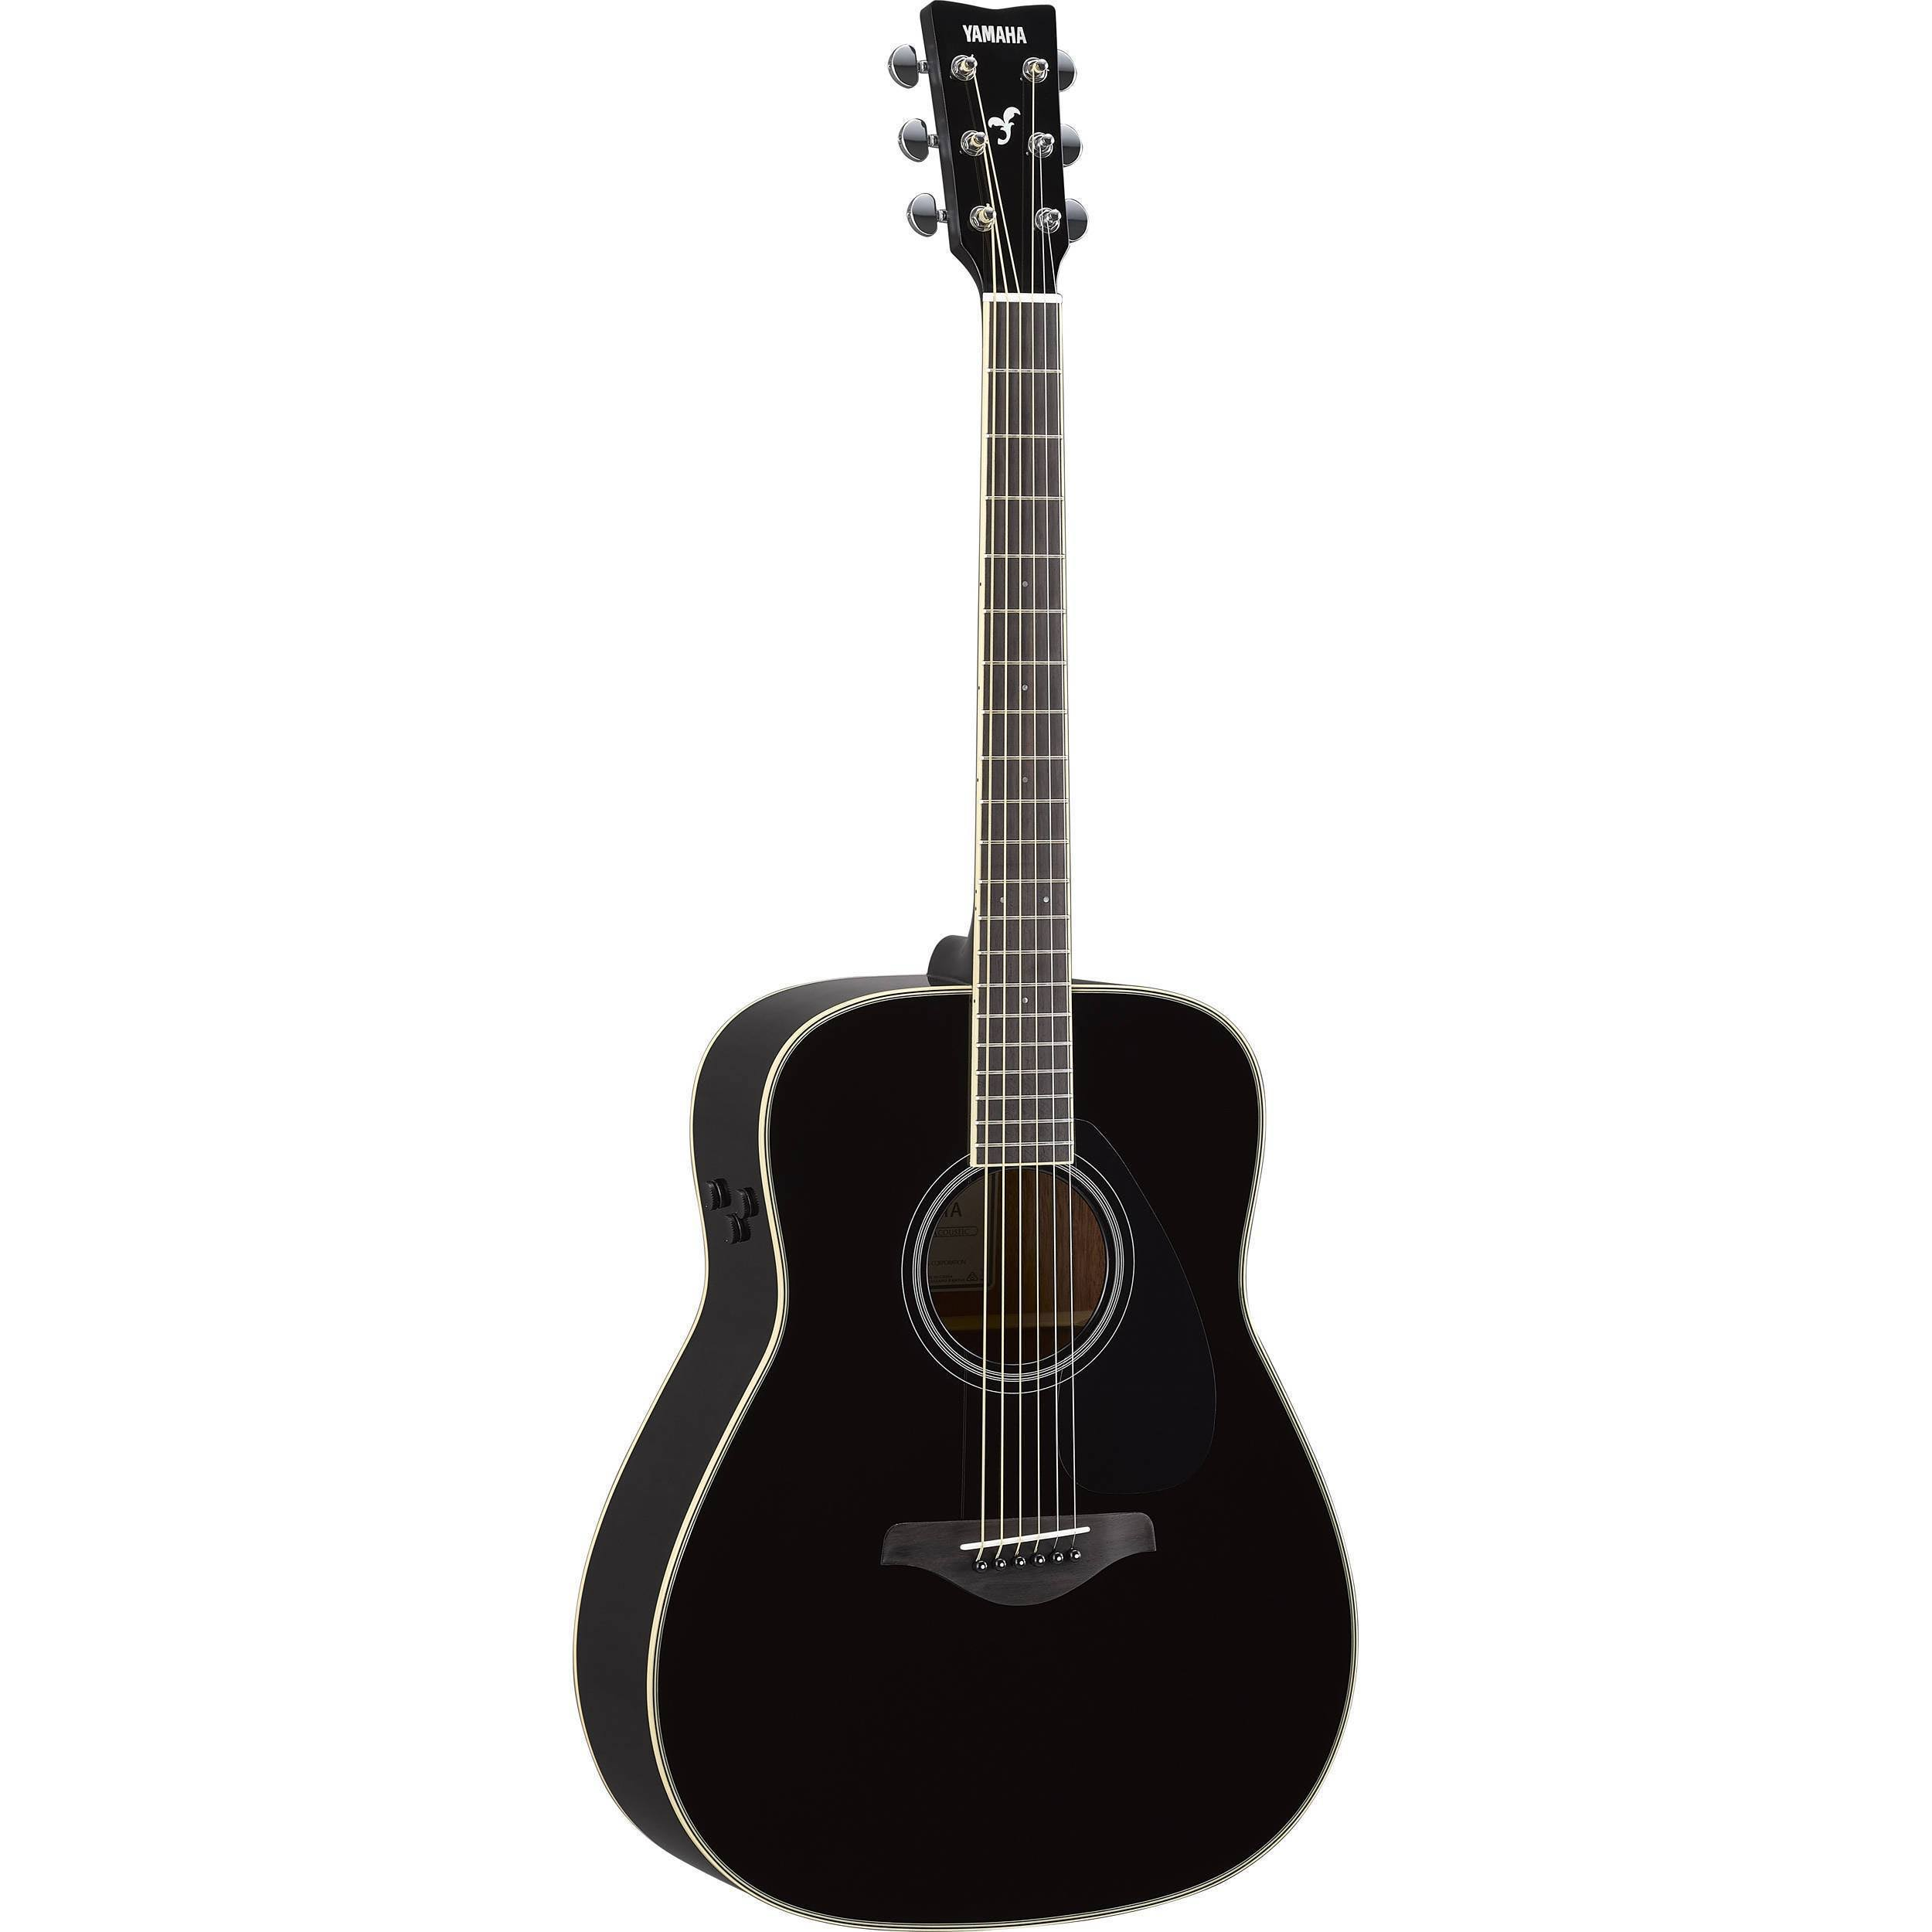 Yamaha FG-TA TransAcoustic Acoustic-Electric Guitar (Black)